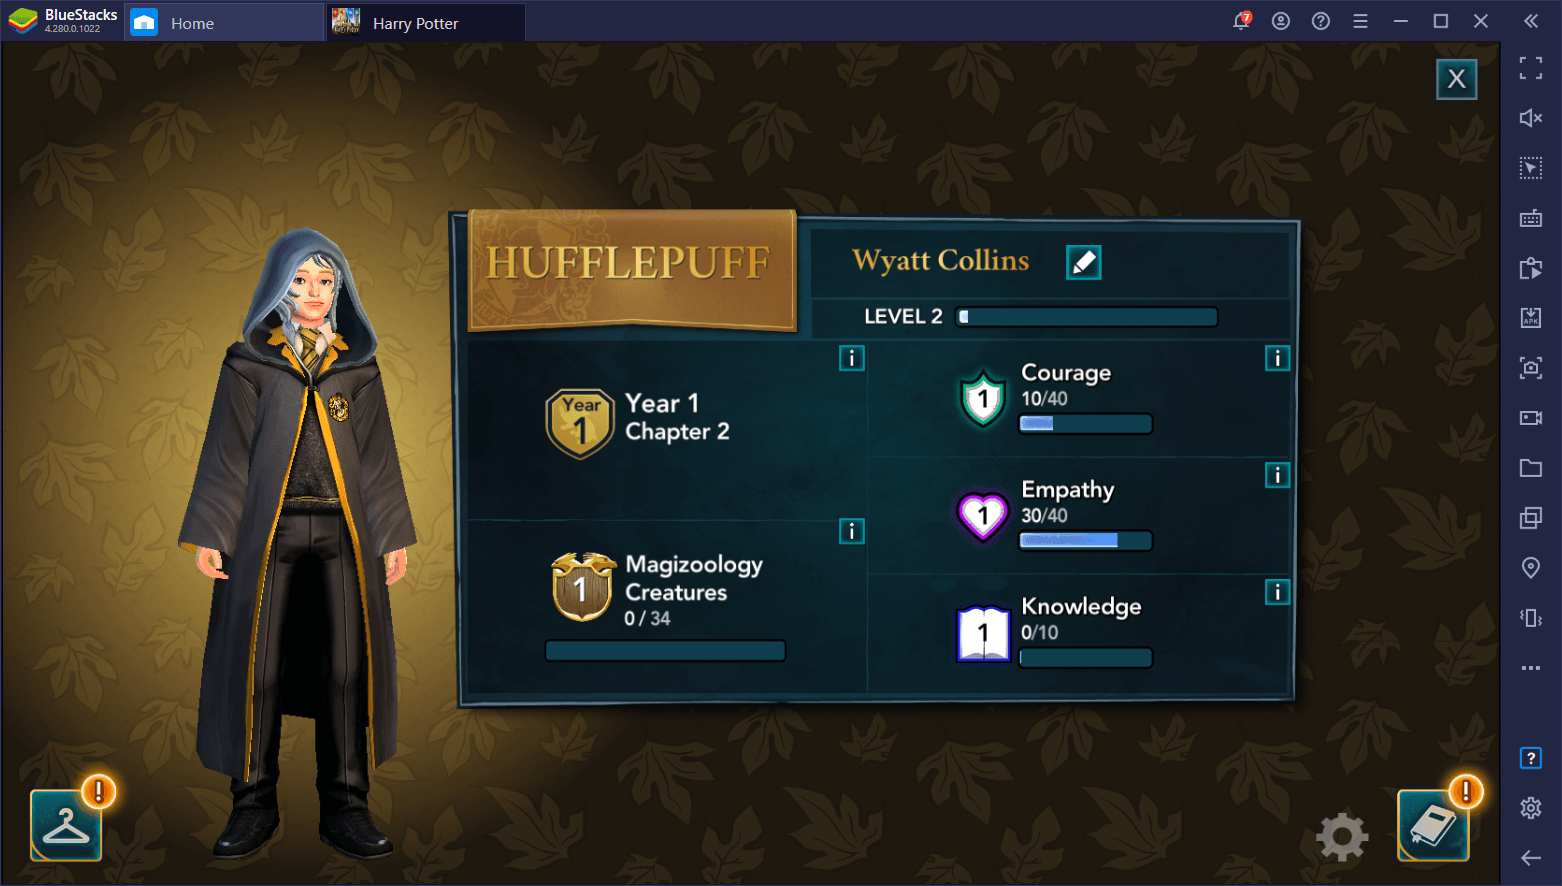 Harry Potter: Hogwarts Mystery on PC – 5 More Useful Tips and Tricks for this Point 'n Click Adventure Game